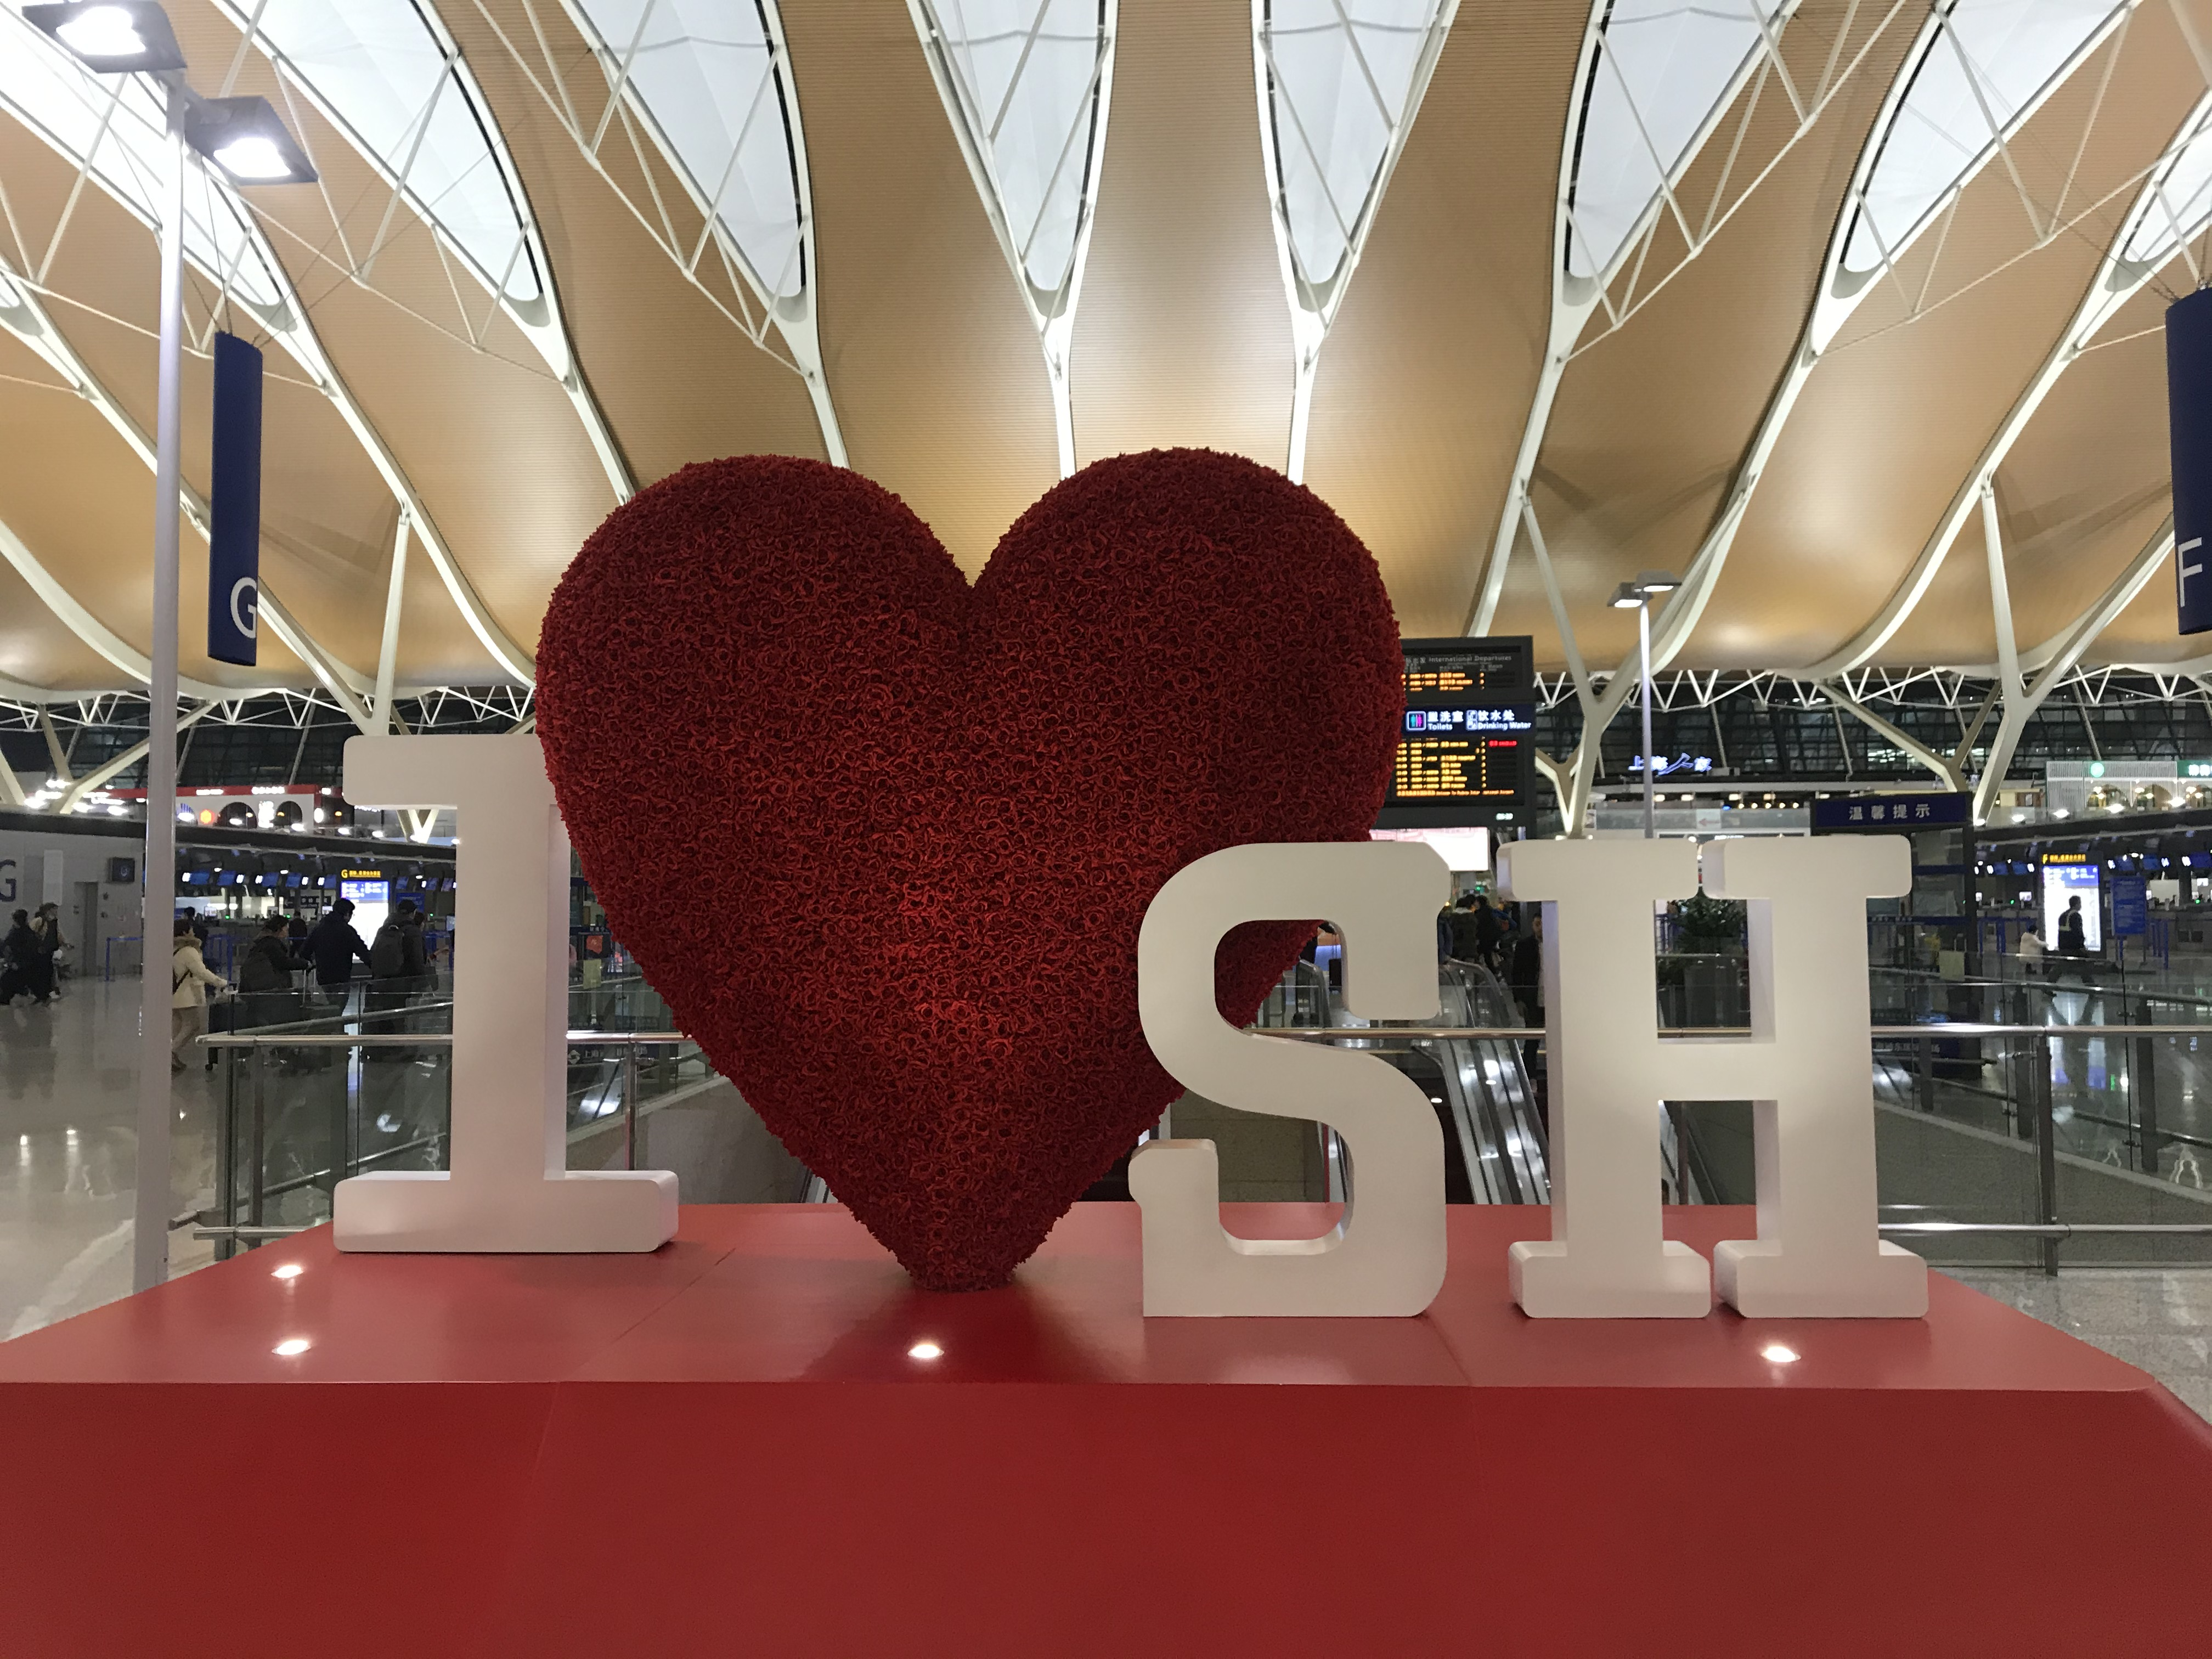 File 202001 I Love Sh Sign At Pvg T2 Departure Hall Jpg Wikimedia Commons